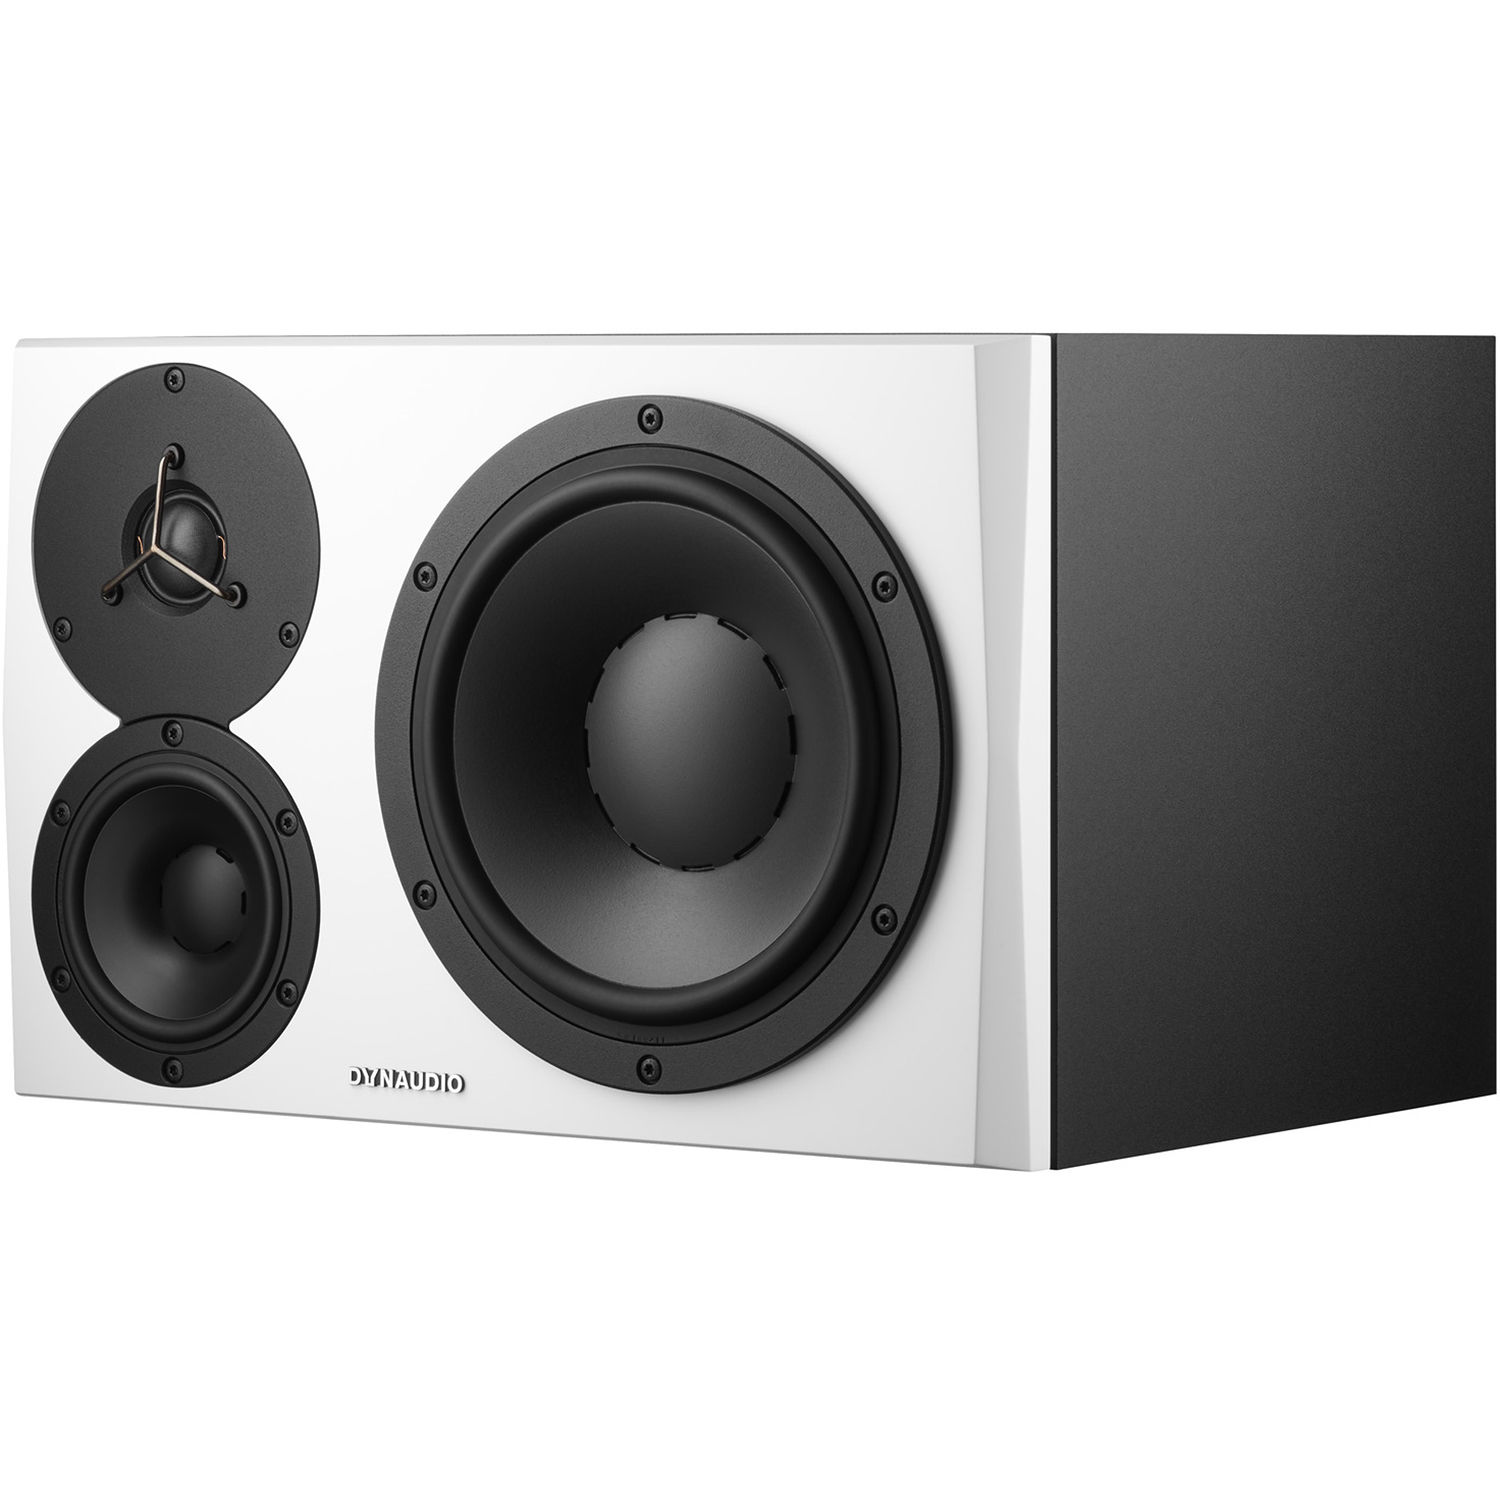 Dynaudio Acoustics Bh Photo Video 3 Way Speaker Switch Lyd 48 Nearfield Monitor Left White